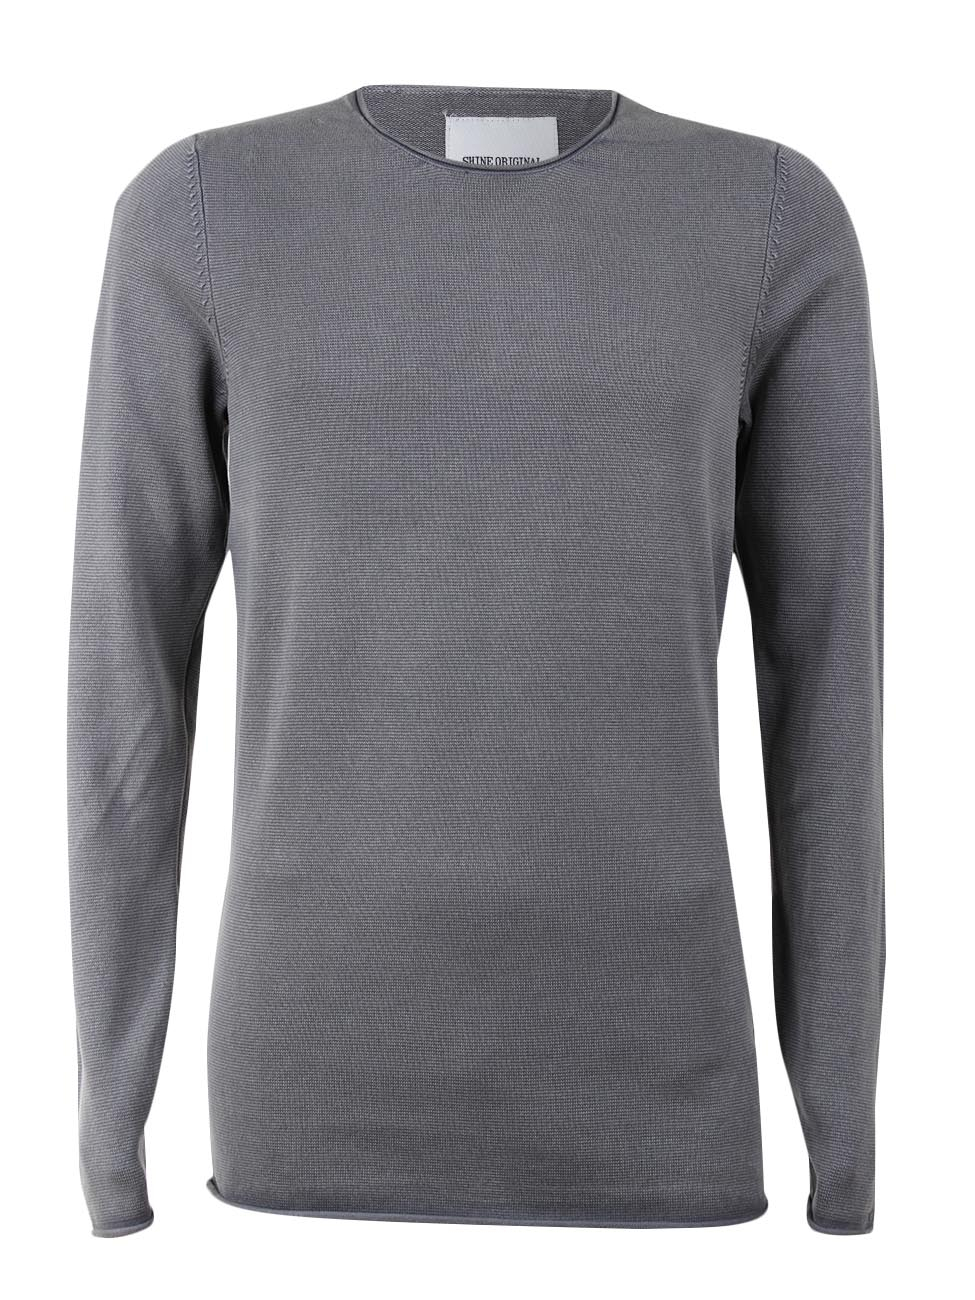 Shine Original Herren Rundhals Pullover - Acid Wash - Roll Edge Knit